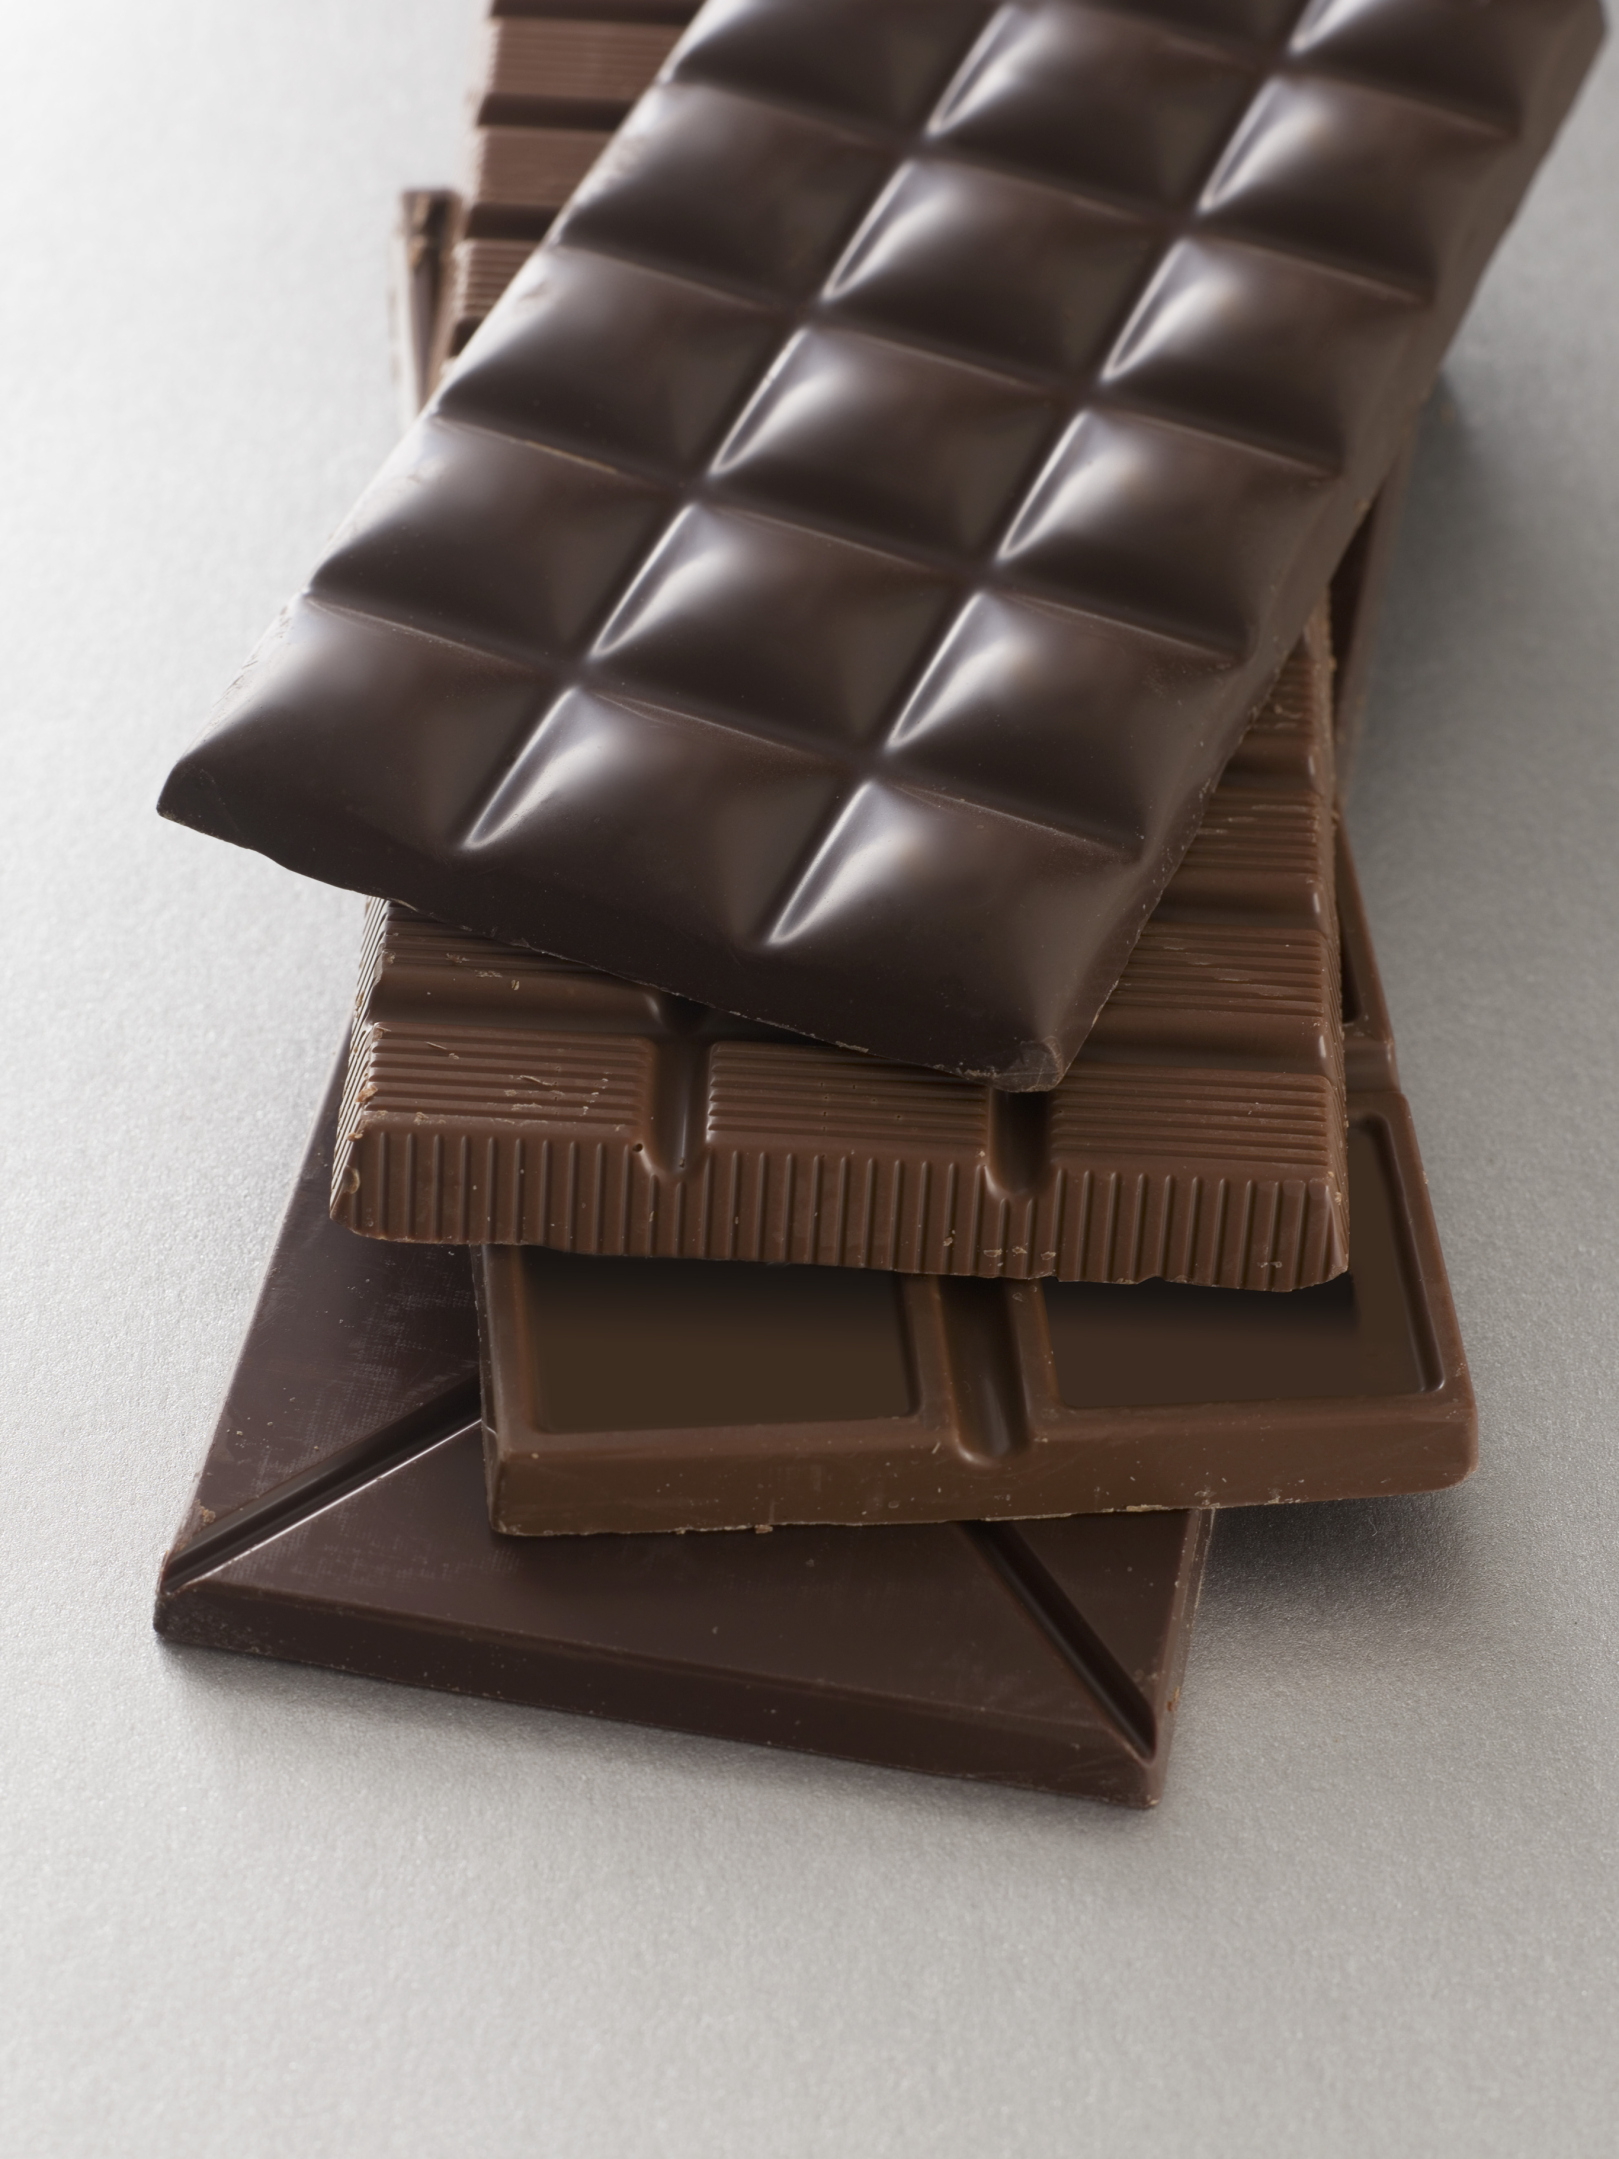 Dark chocolate has more antioxidants than milk chocolate.